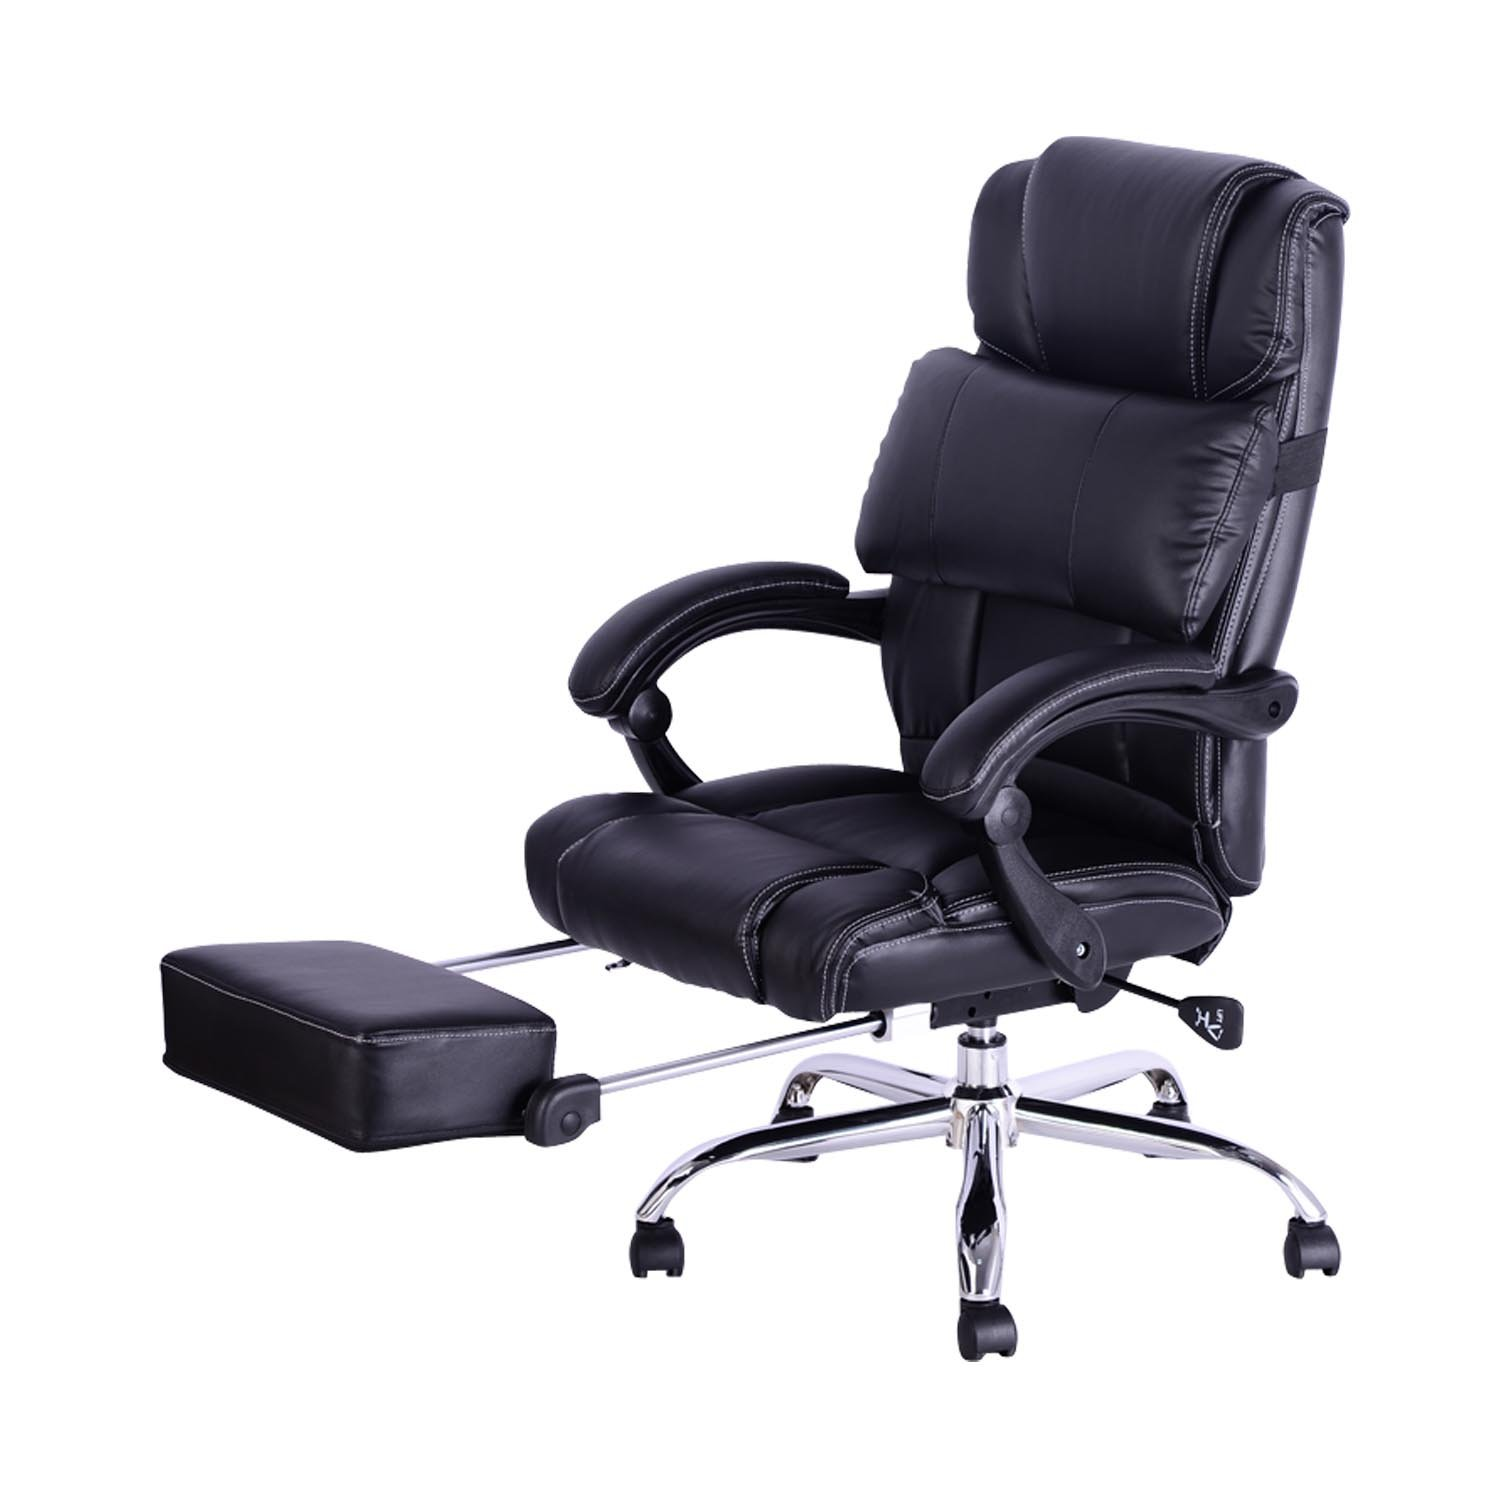 office recliner chair. HOMCOM Luxury Executive Reclining Office Chair W/ Footrest - Black: Amazon.ca: Home \u0026 Kitchen Recliner